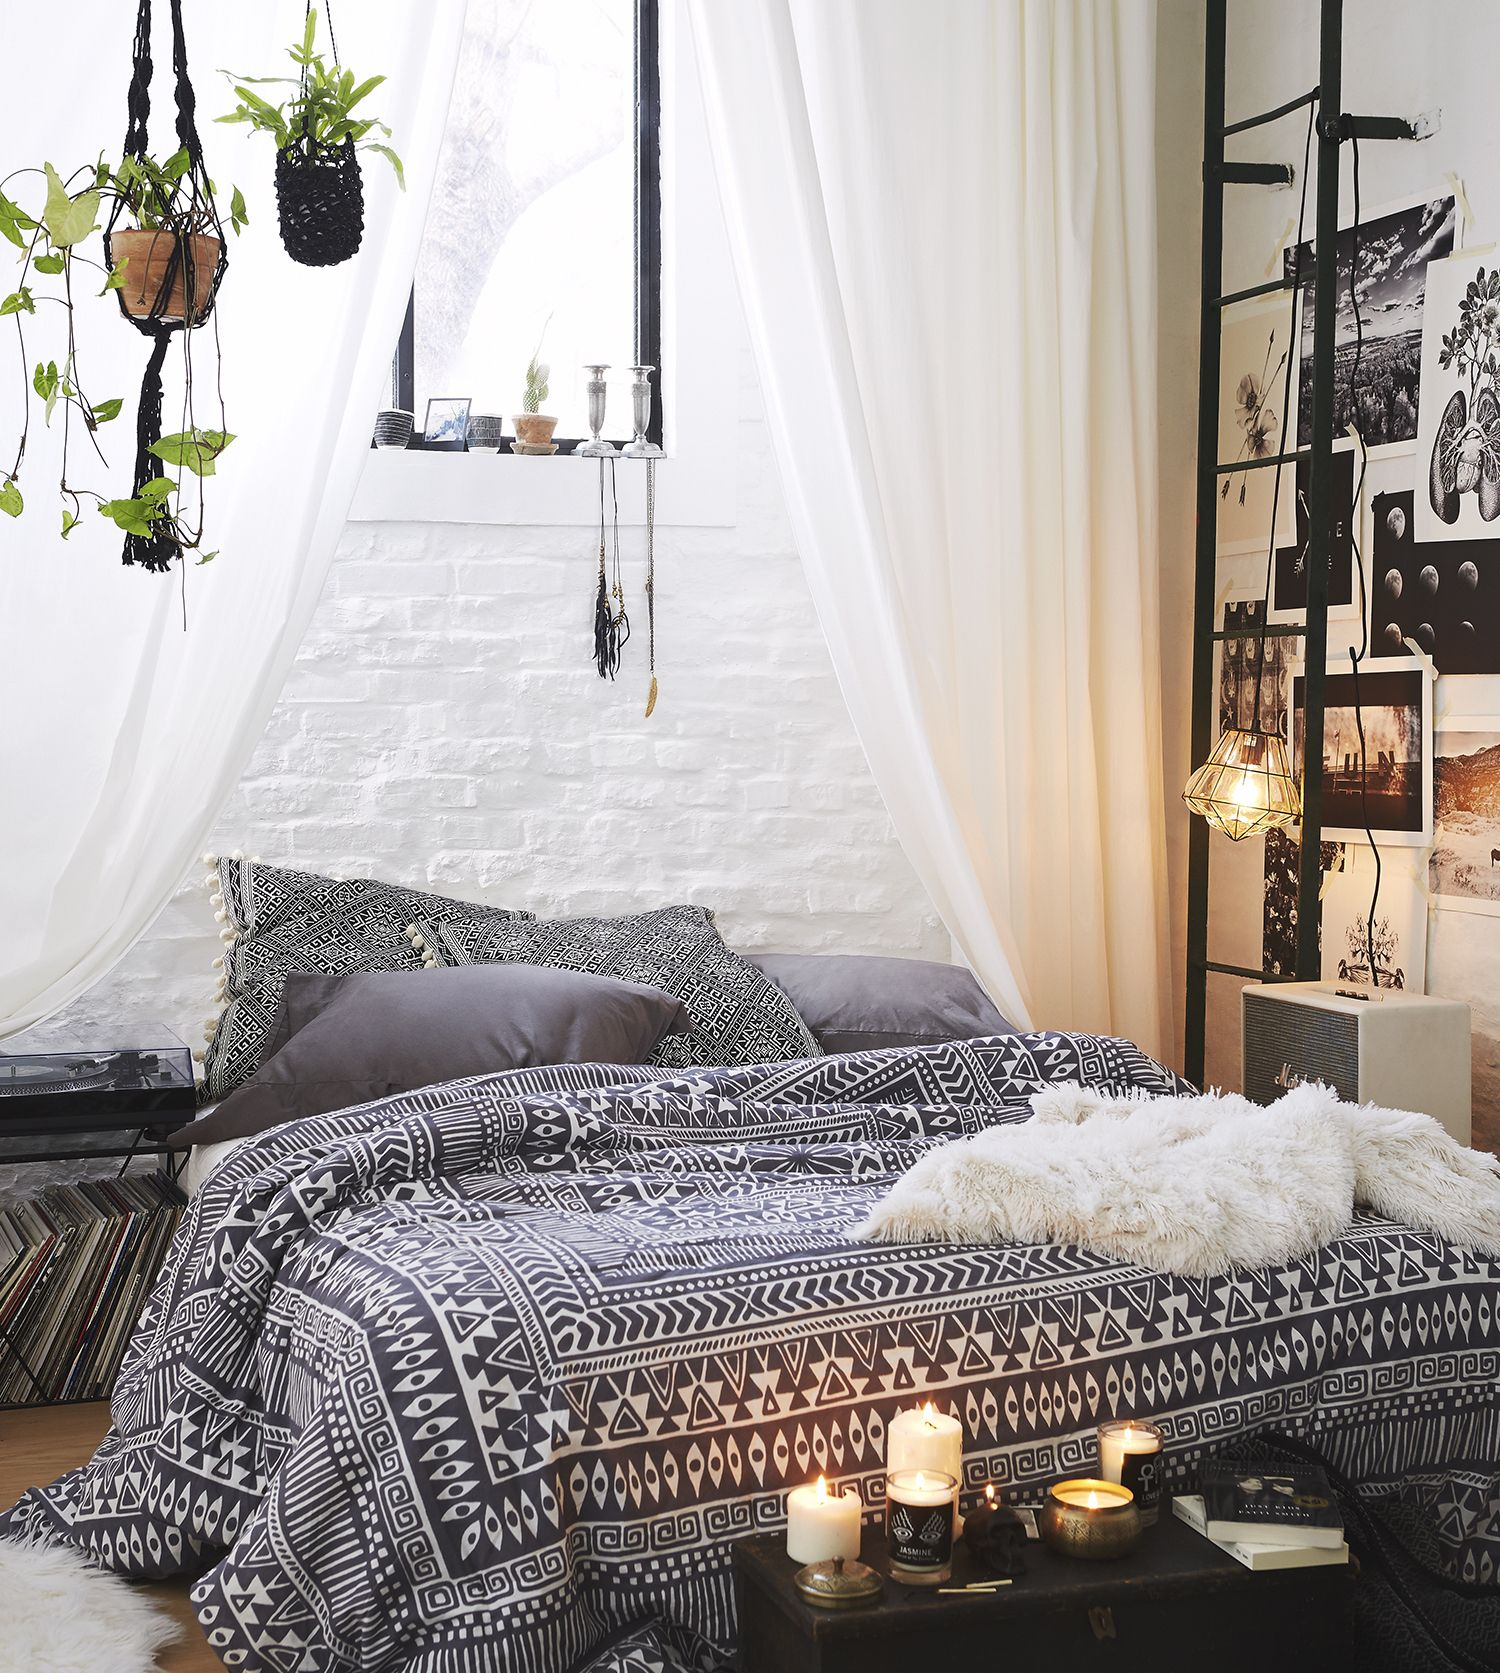 4 SIMPLE STEPS TO MAKE YOUR ROOM BOHO CHIC